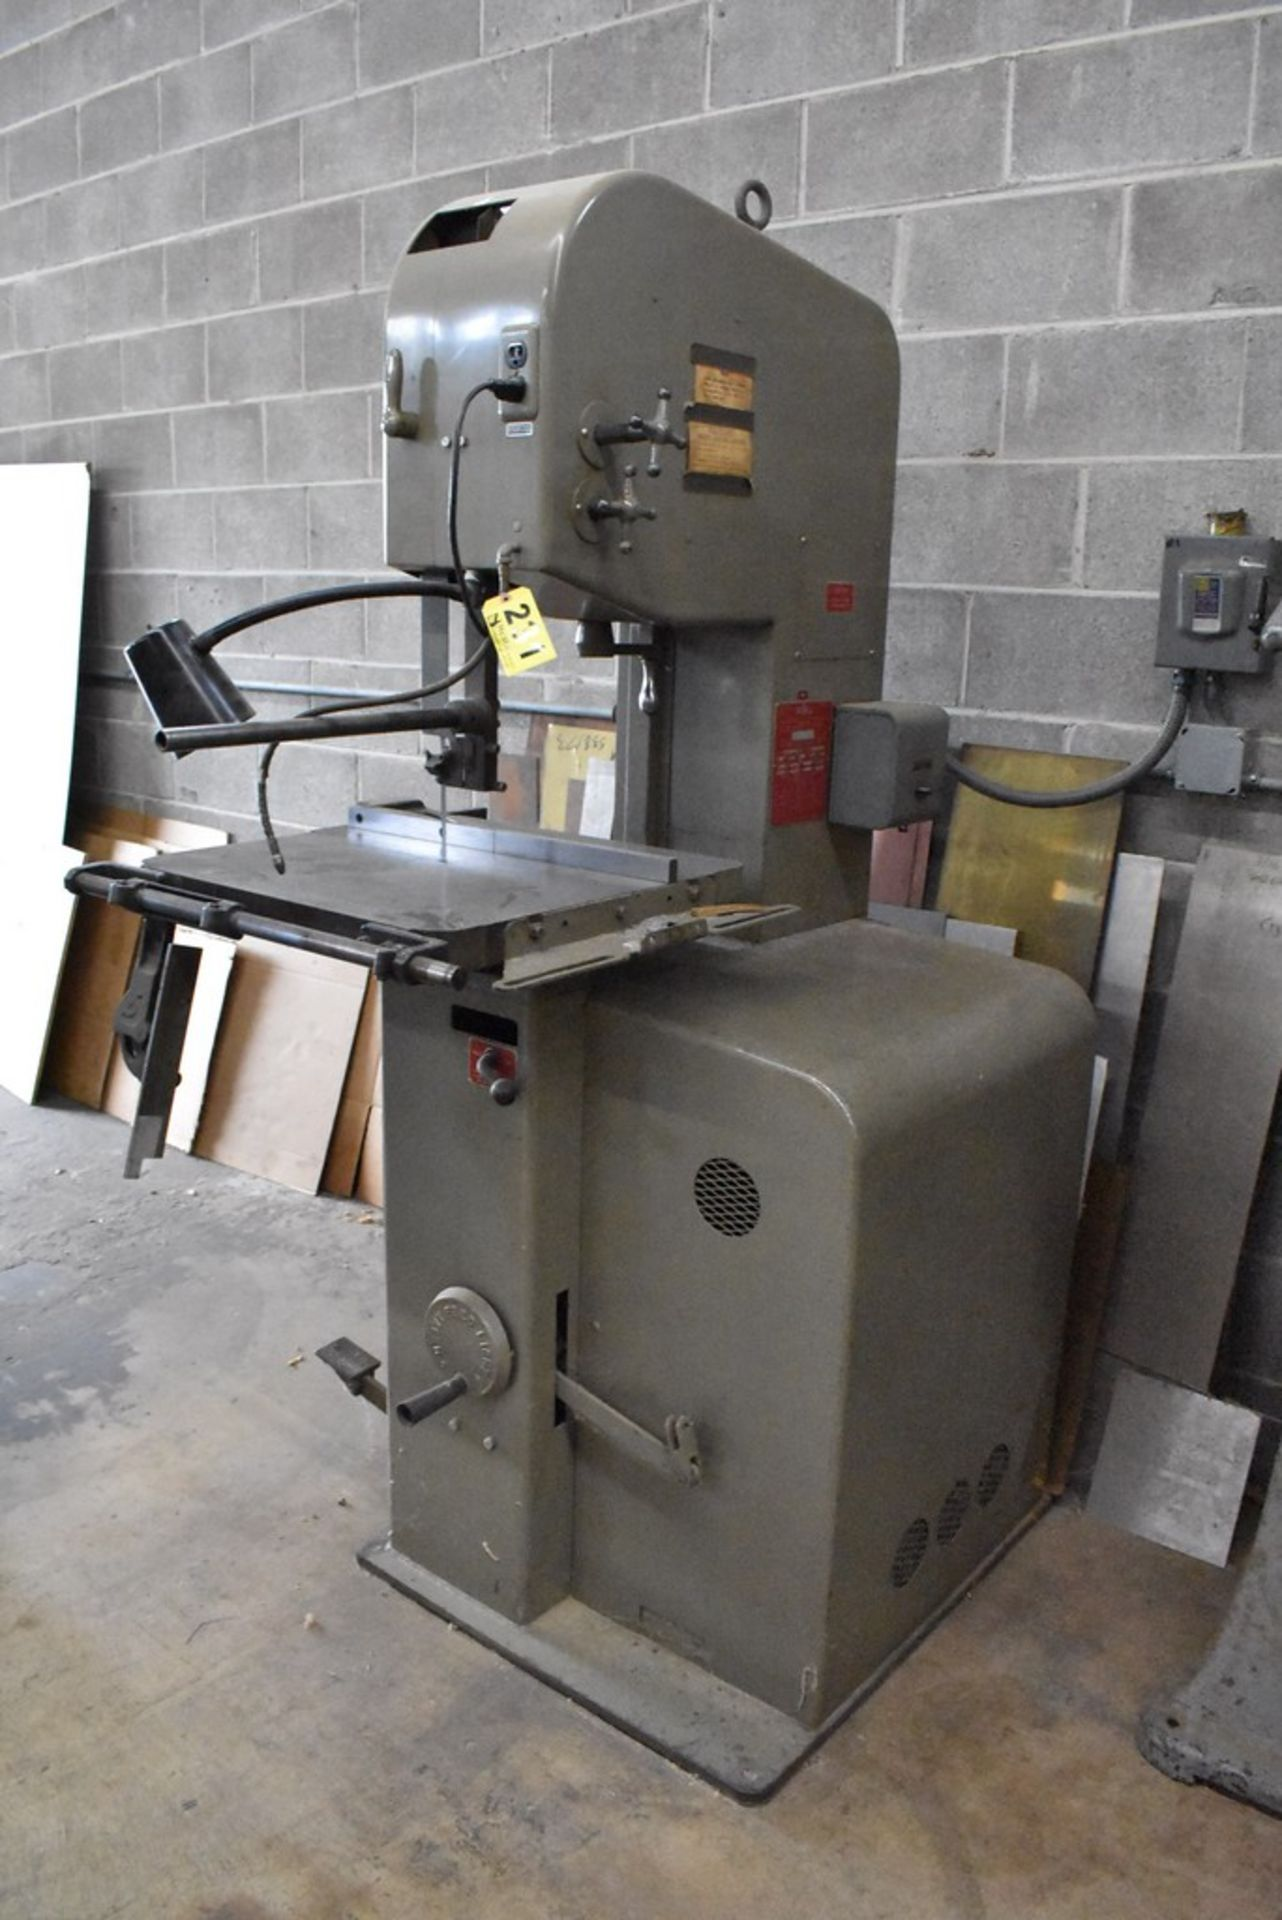 """DOALL 16"""" MODEL 1612-1 VERTICAL BAND SAW, S/N 148-681291, WITH BLADE WELDER - Image 8 of 9"""